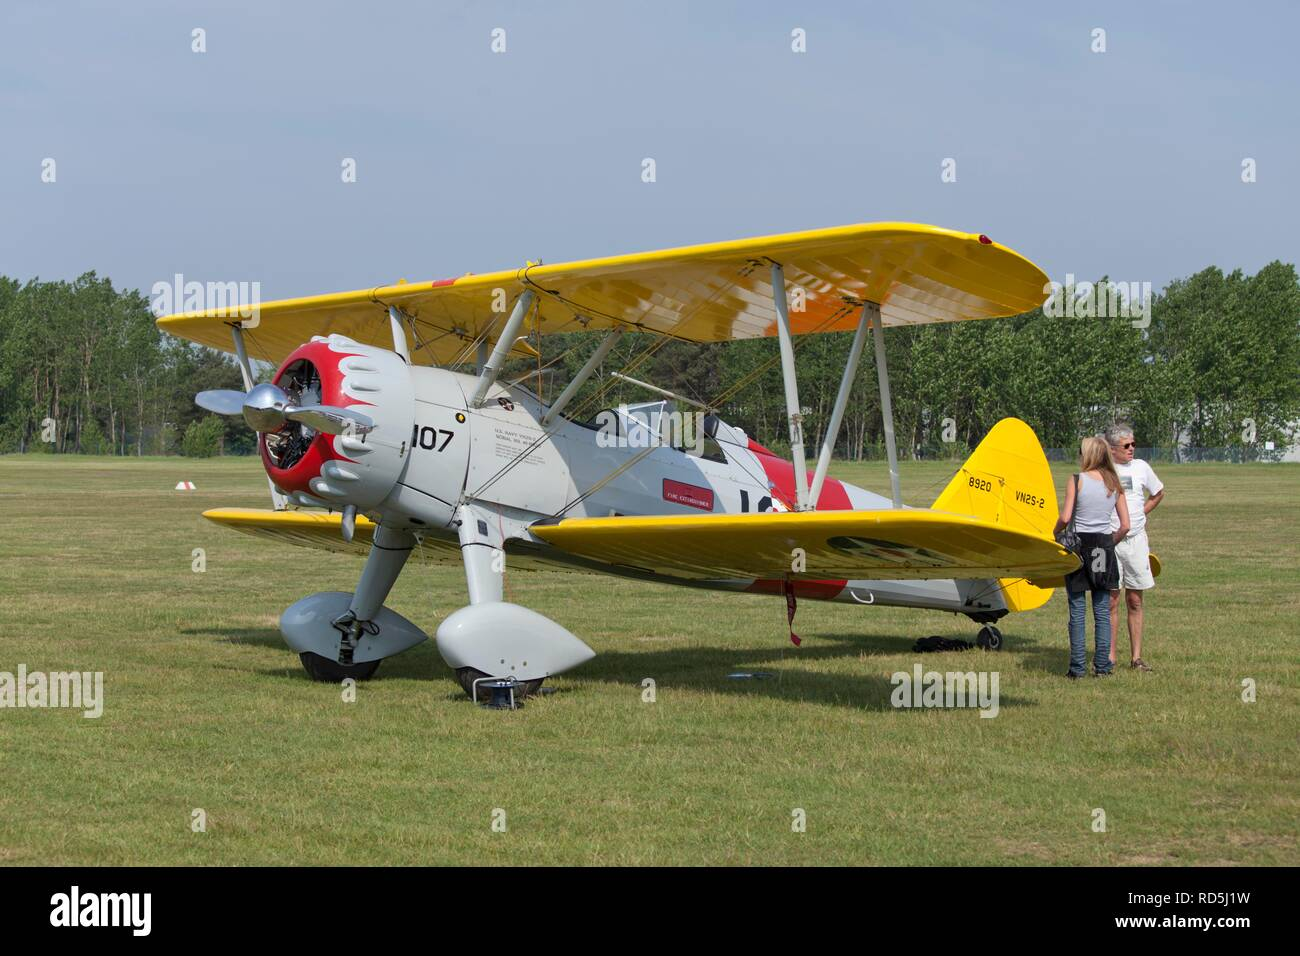 Biplane, celebration of the 100th anniversary of the airfield, in Lueneburg, Lower Saxony, Germany Stock Photo